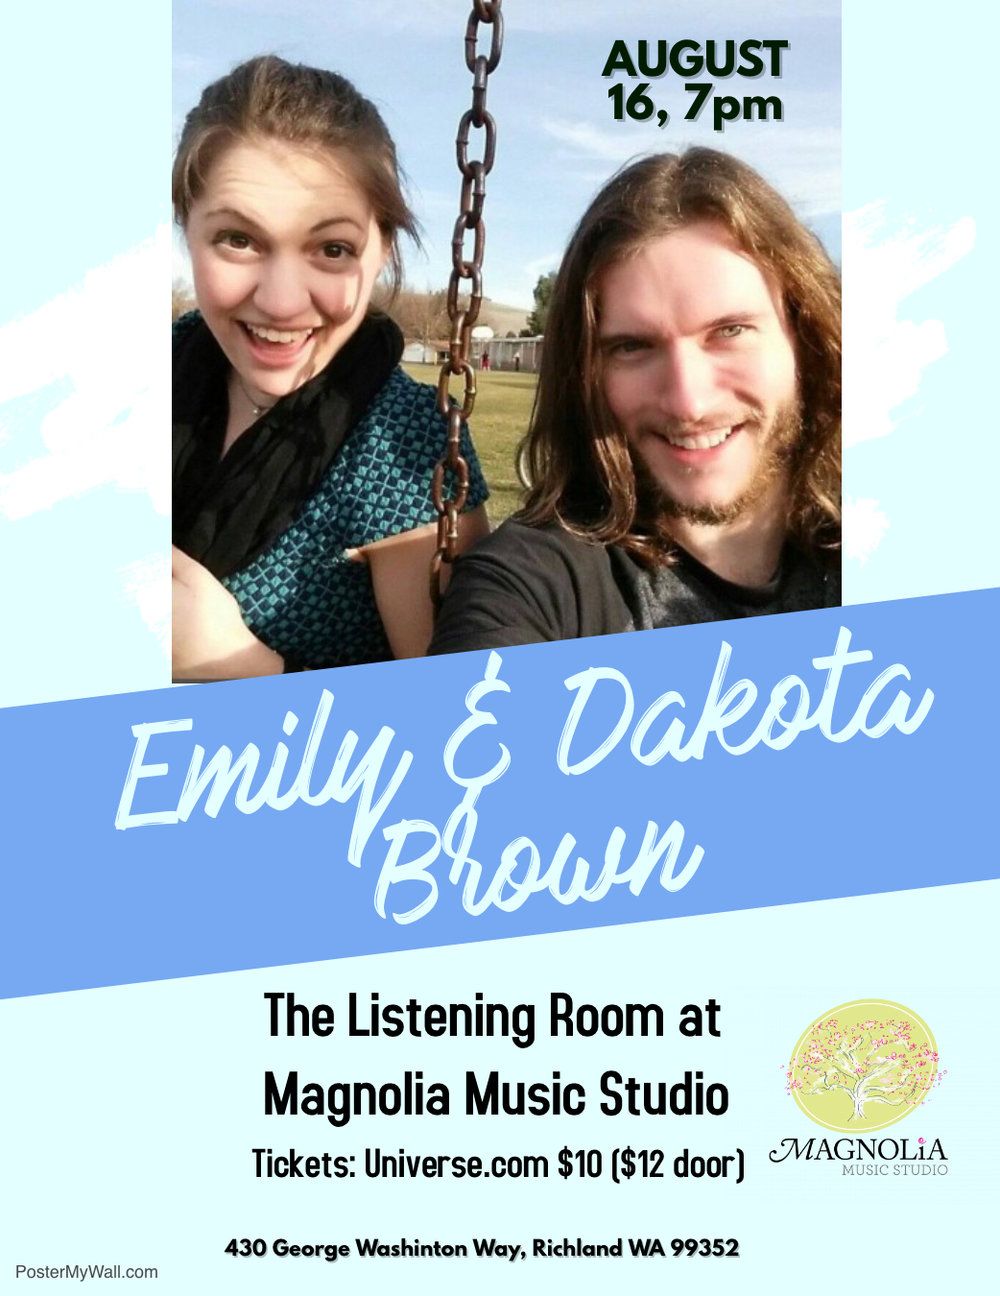 Emily Brown (vocals) and Dakota Brown (vocals and guitar), Thursday August 16, 7pm.  Tickets